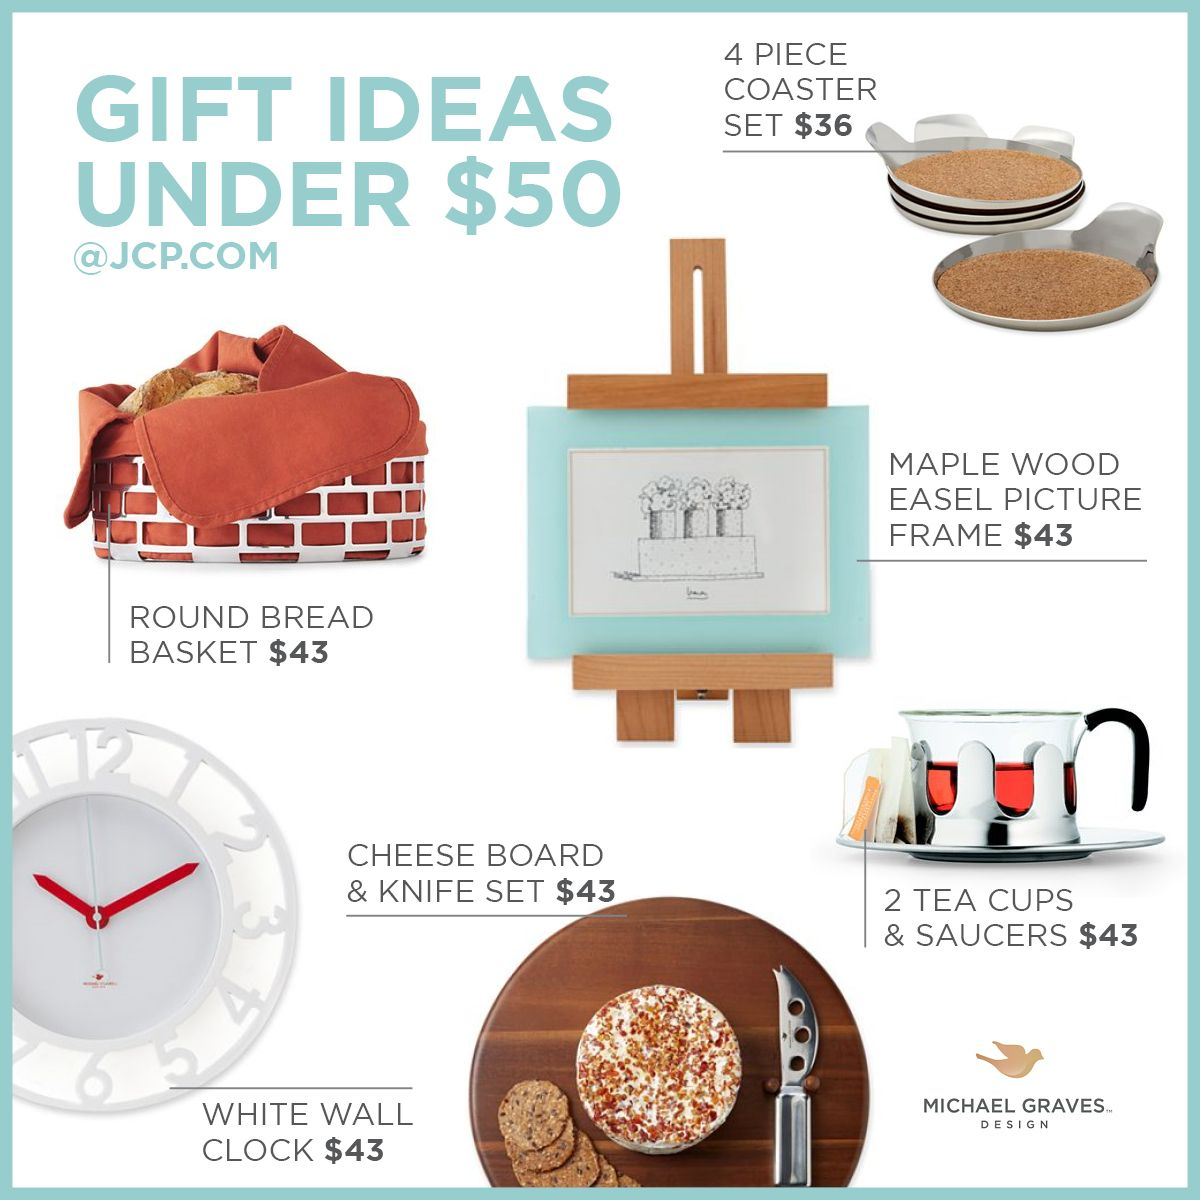 969c17e146ab Look at these great gift ideas under  50! ALL of these items are on SALE or  on CLEARANCE right now  JCPenney.com.